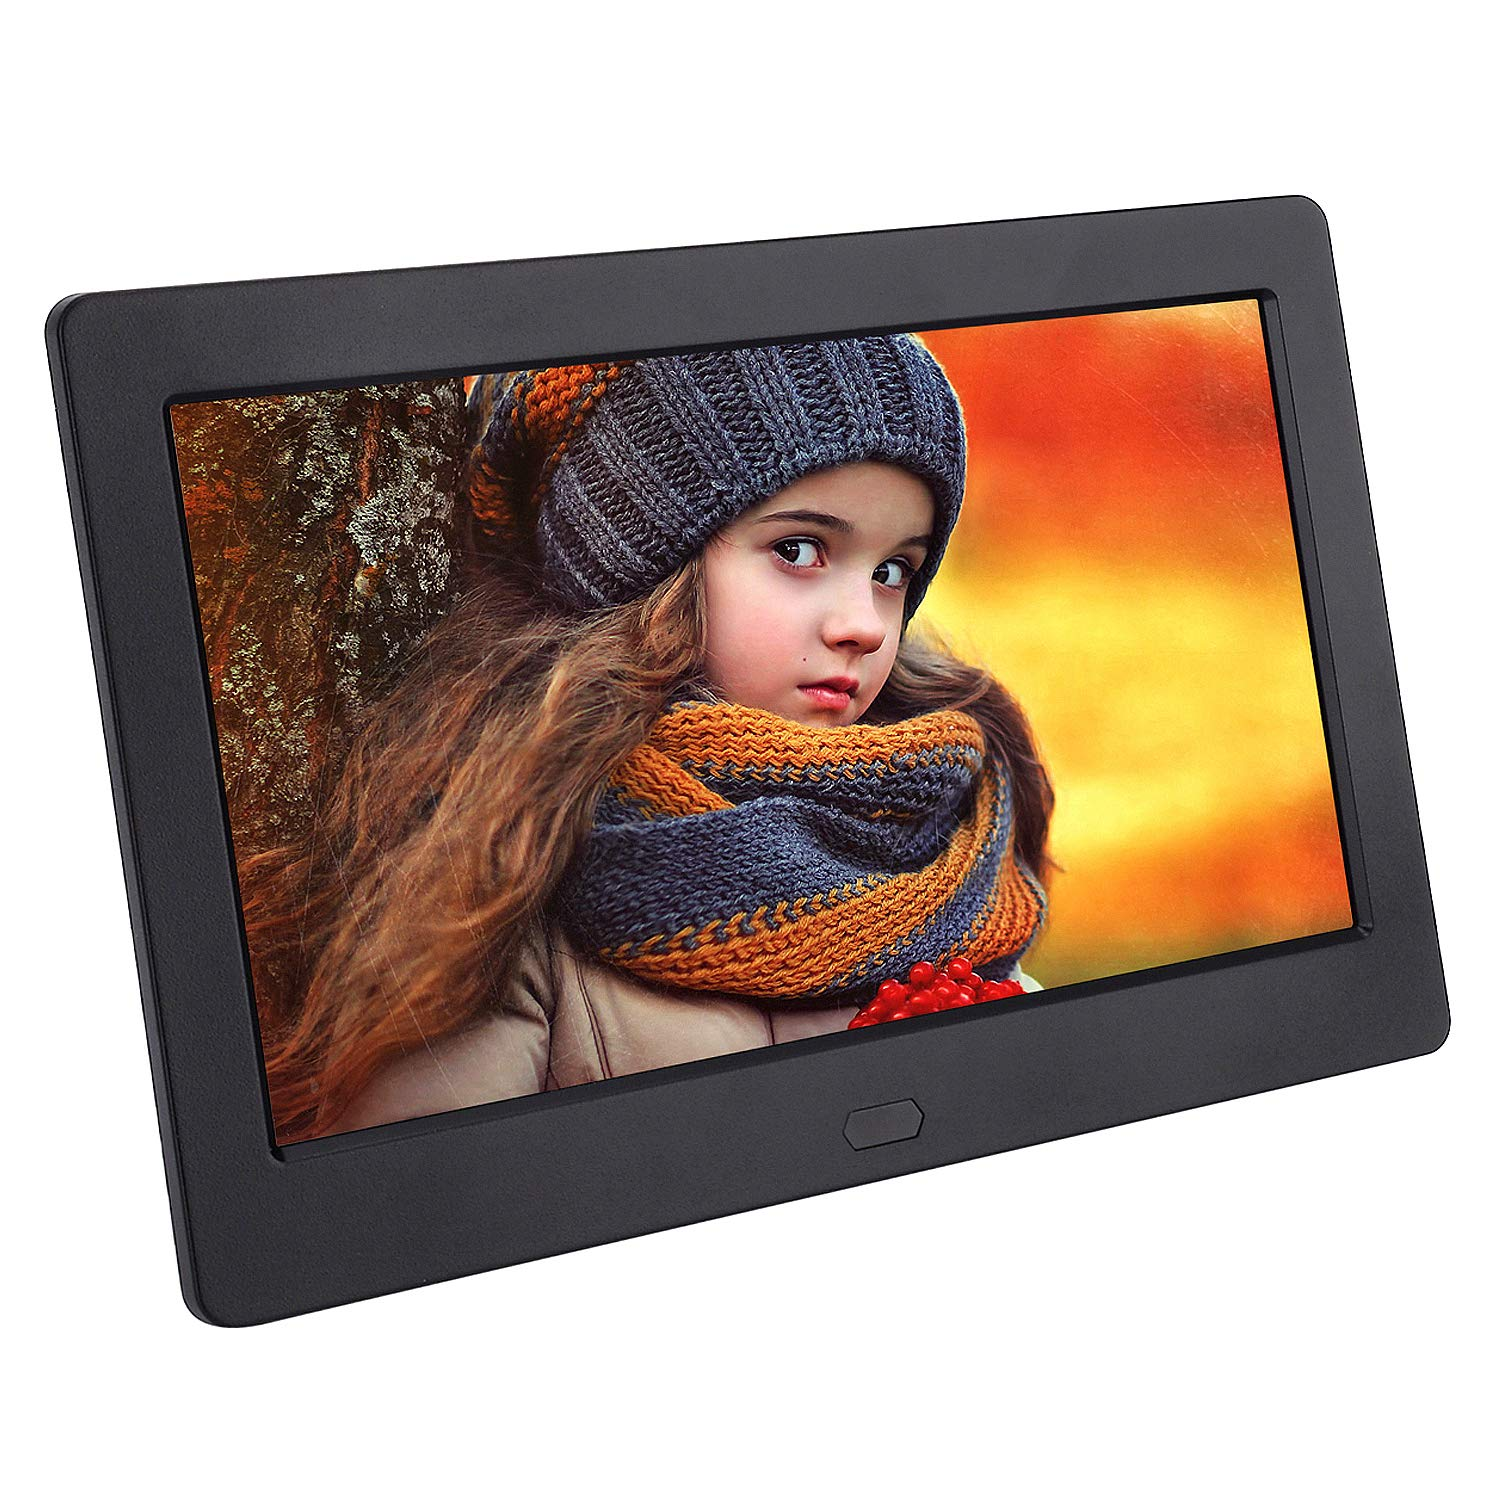 Digital Picture Frame 7 Inch 1280x800 (16:9) IPS Widescreen Display,FamBrow Smart Electronic Digital Photo Frame Auto On/Off Timer,Support 1080P Video,Stereo,MP3,Calendar,Remote Control